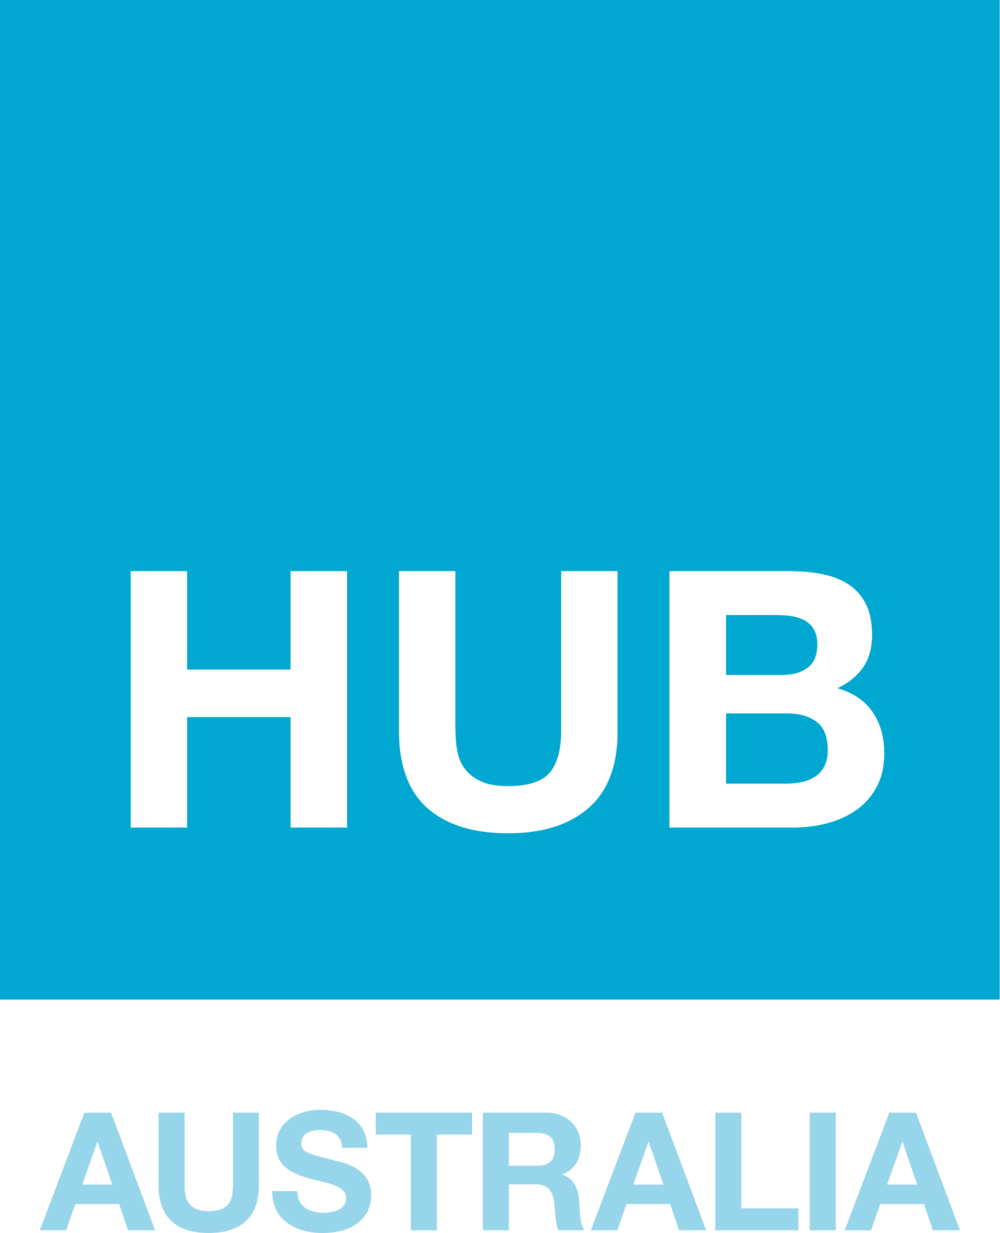 Hub Melbourne - We were supported by Hub Melbourne through the early years of our growth, with a sponsored co-working space in 2012-2013. Marco Polo Project contributed a global perspective to the Hub Melbourne community, and organised community events on language education.